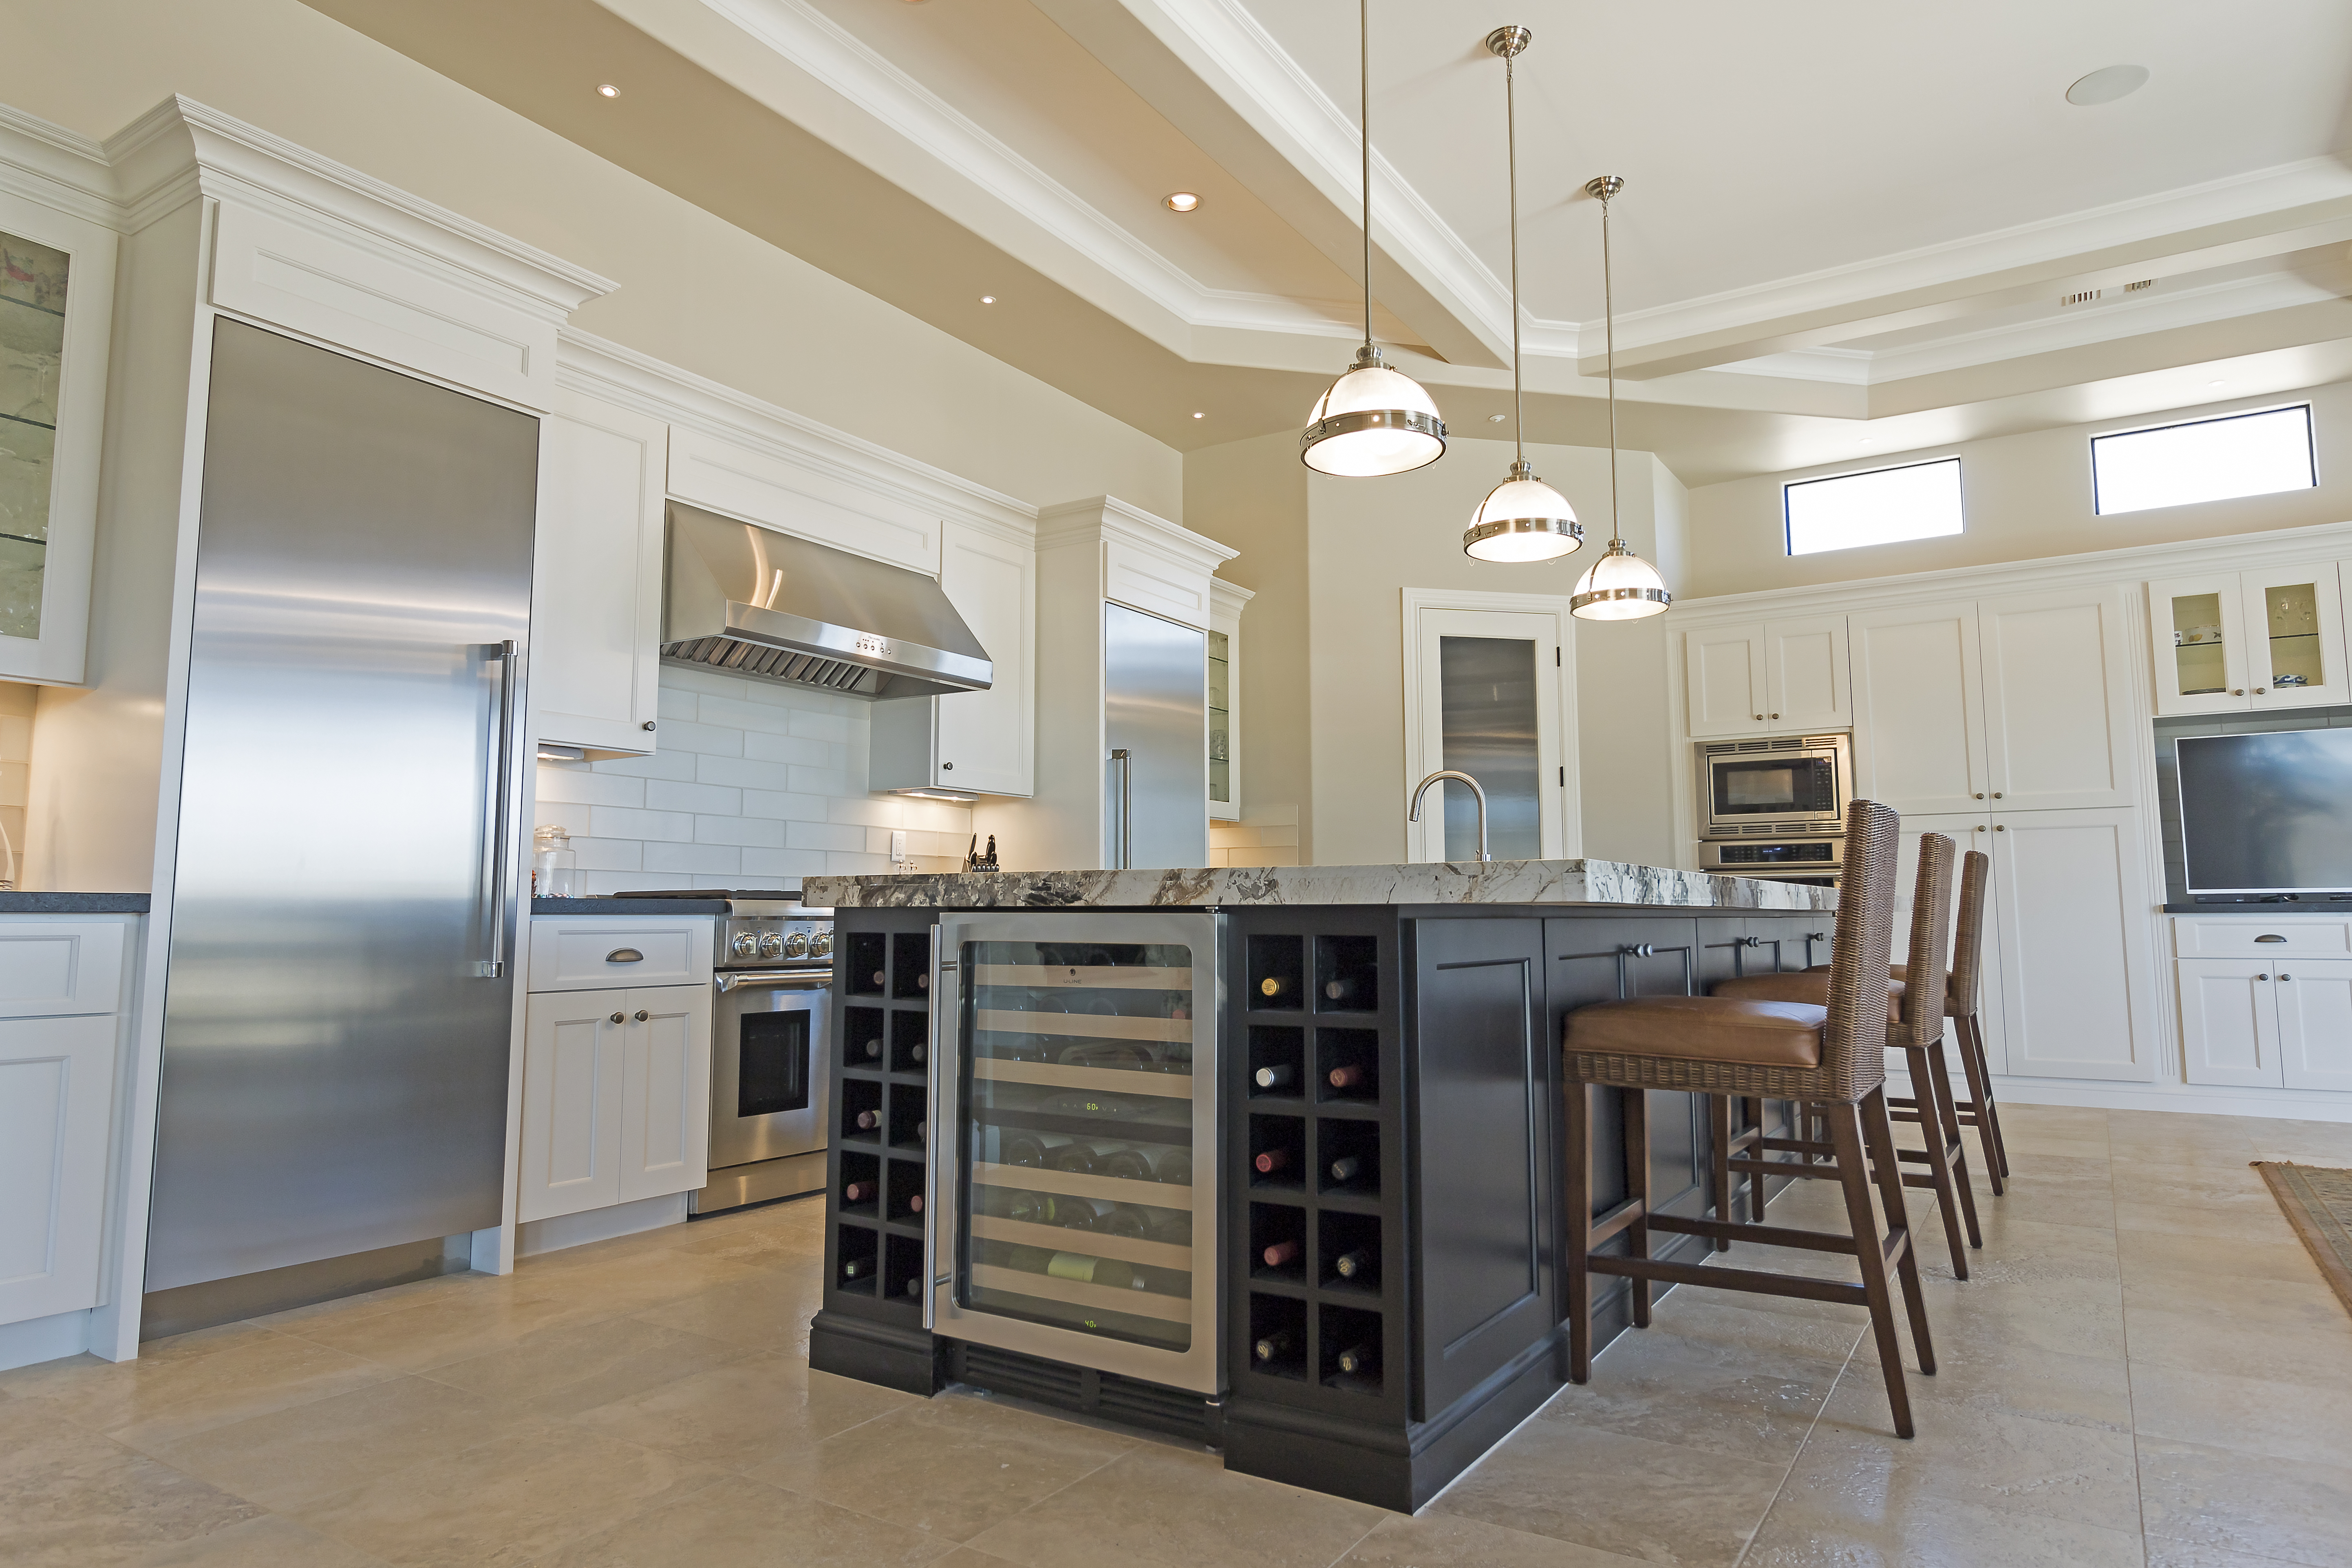 Phoenix Blackstone Custom Home Contemporary kitchen island with wine cooler and storage